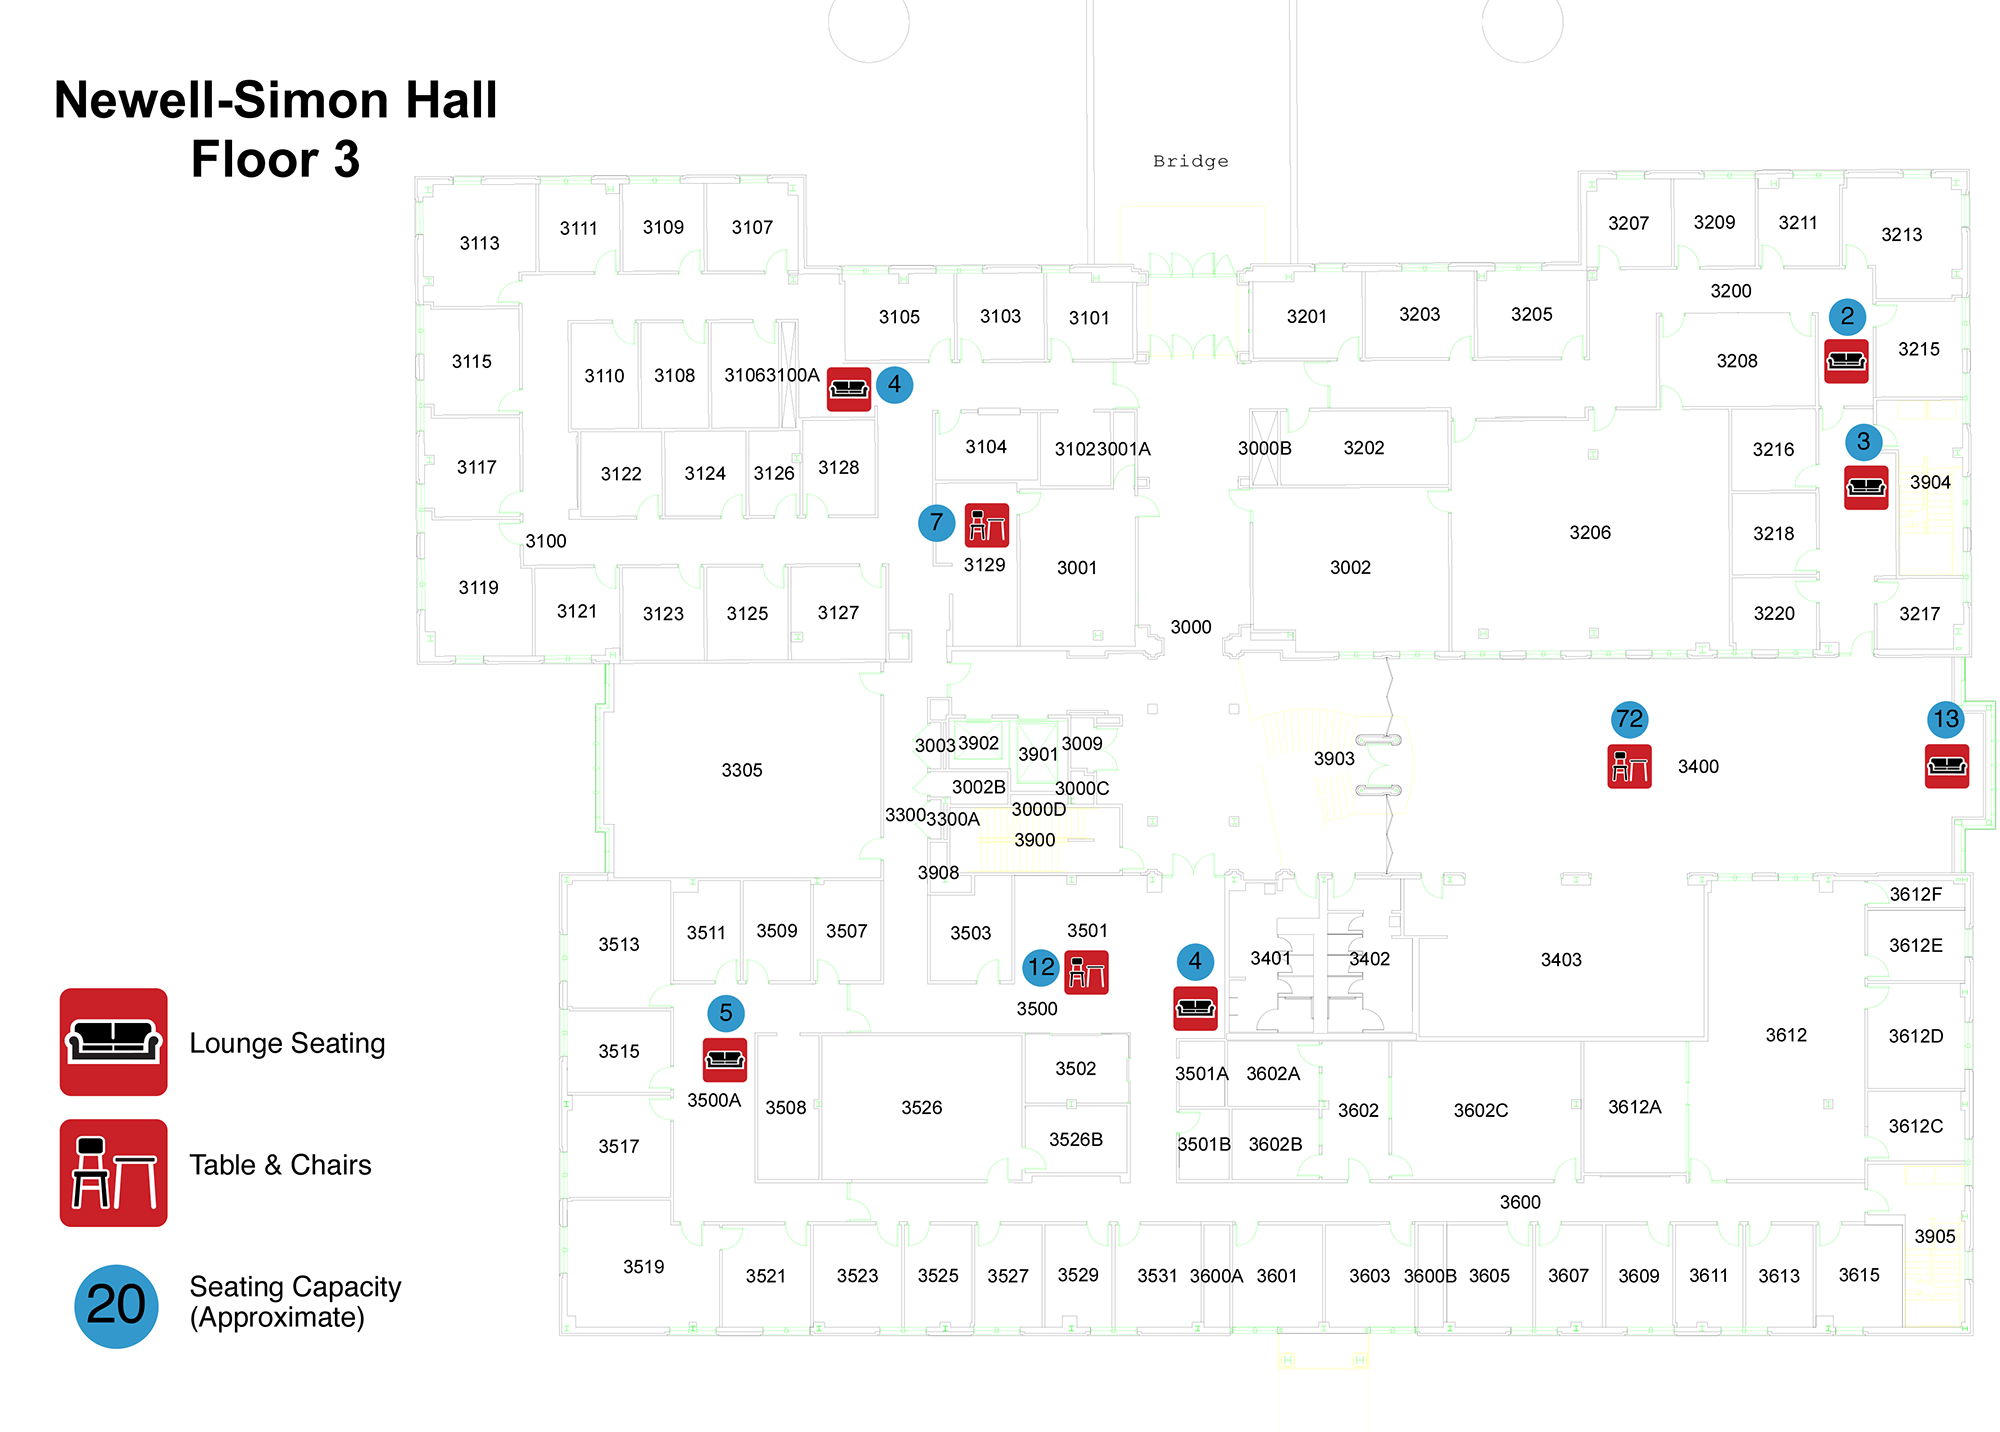 Newell-Simon - 3rd Floor Seating Locations